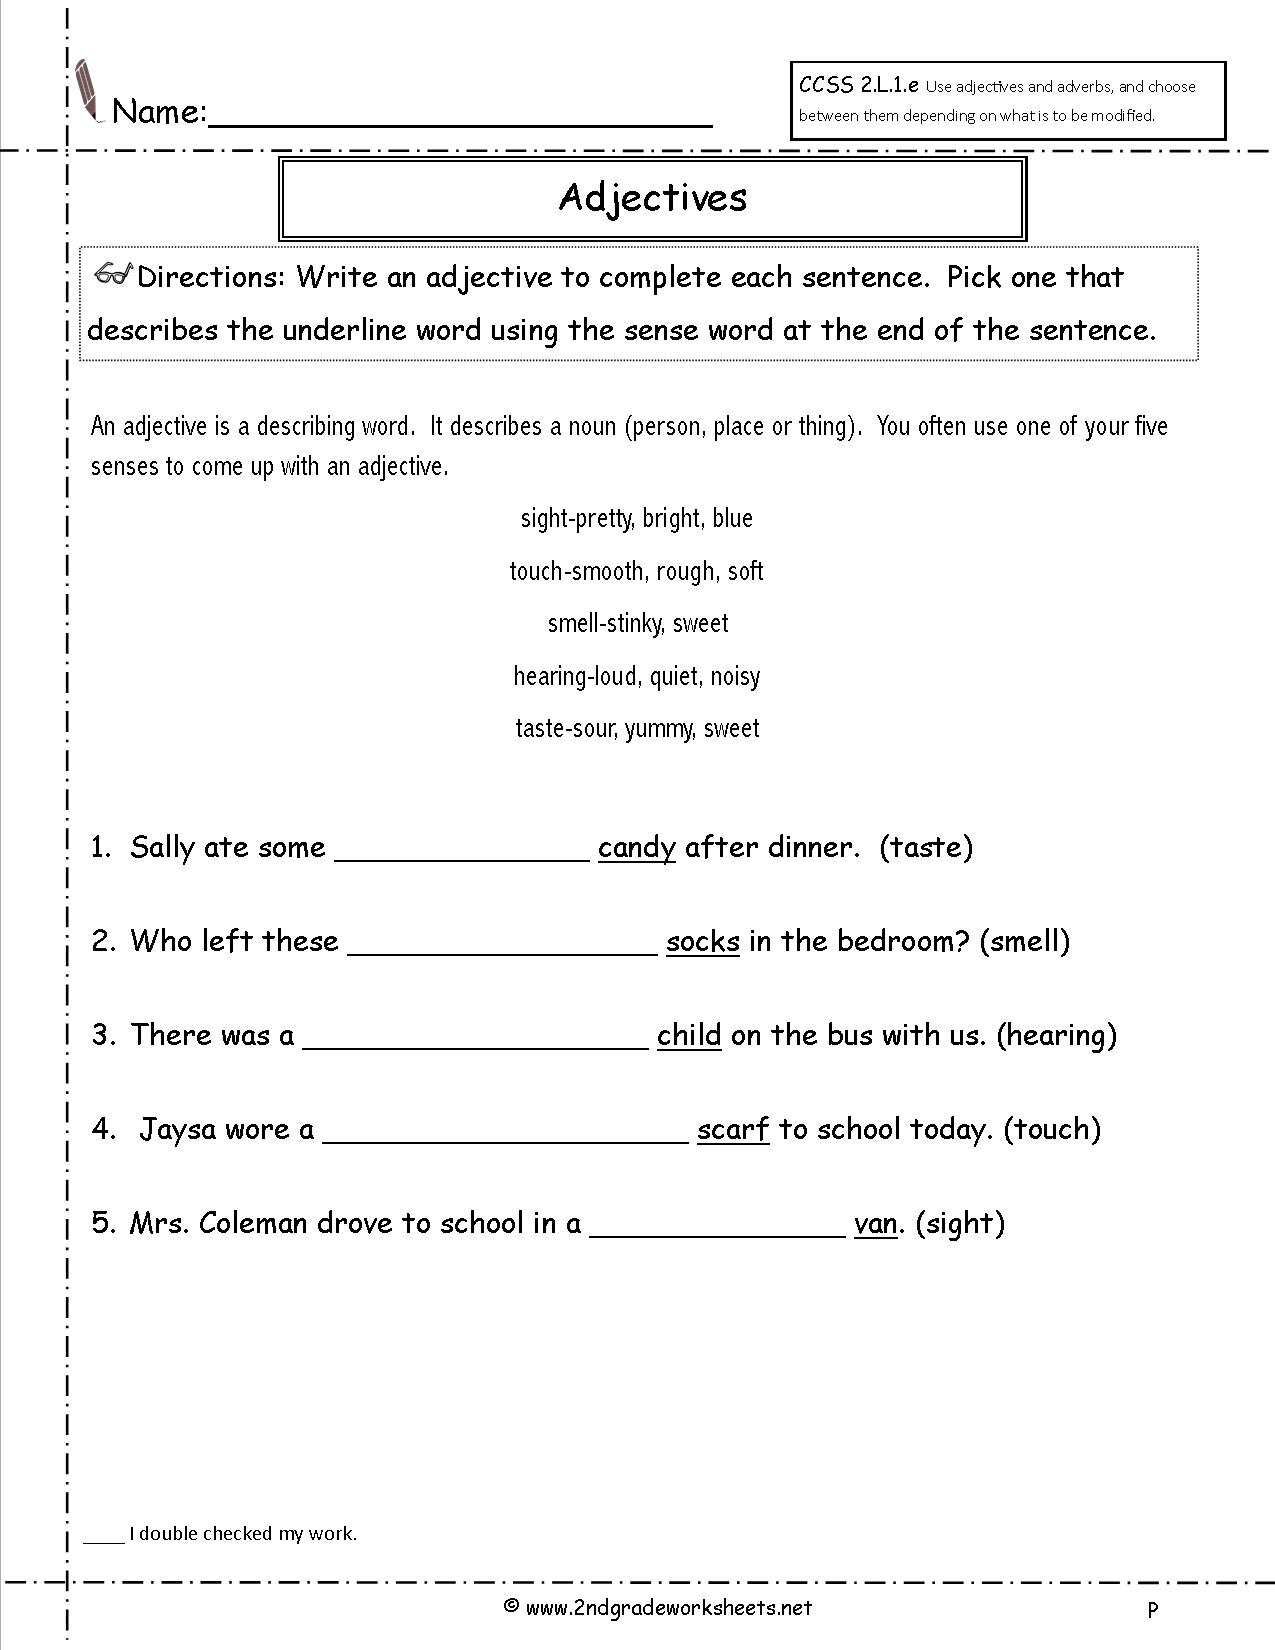 Worksheet Using Adjectives Worksheets free using adjectives worksheets worksheet